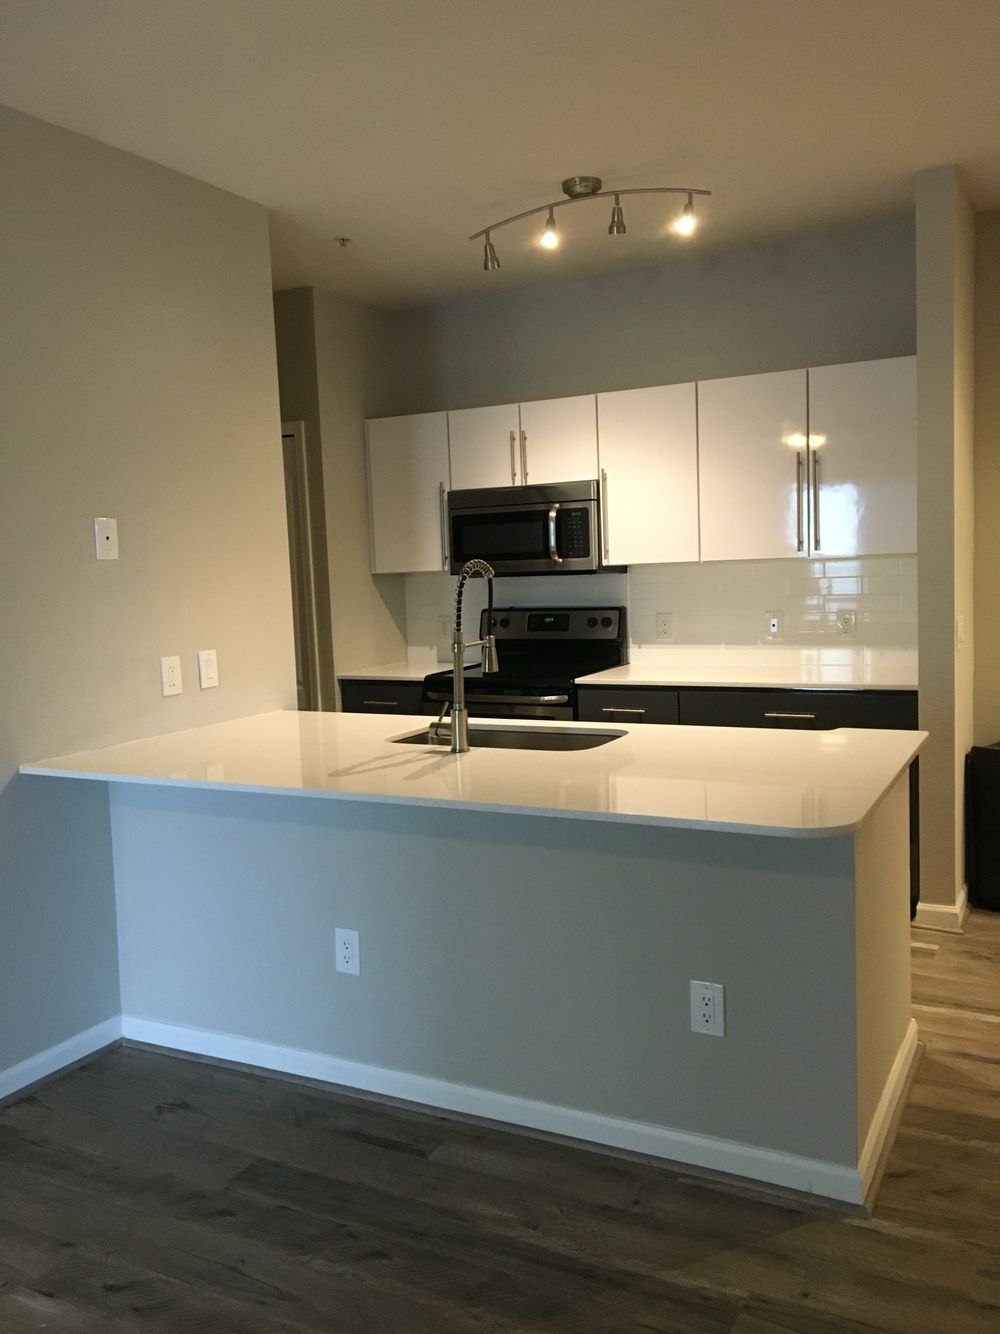 Newly Renovated    Brand New Stainless Steel Appliances. White Quartz  Countertops. Vinyl Wood